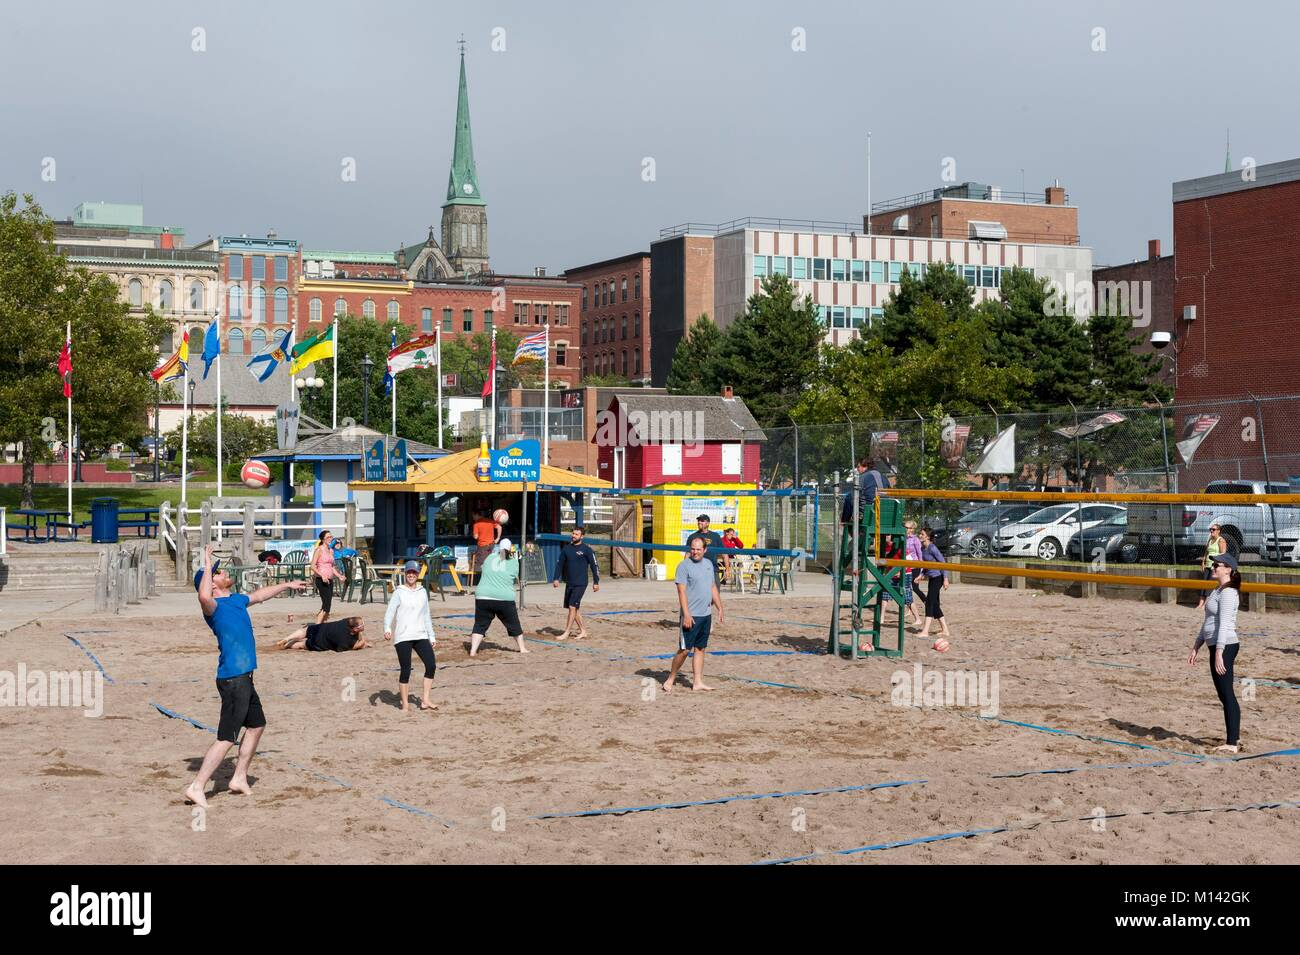 Canada, Nouveau-Brunswick, à Saint John, la place du marché, partie de beach-volley Photo Stock